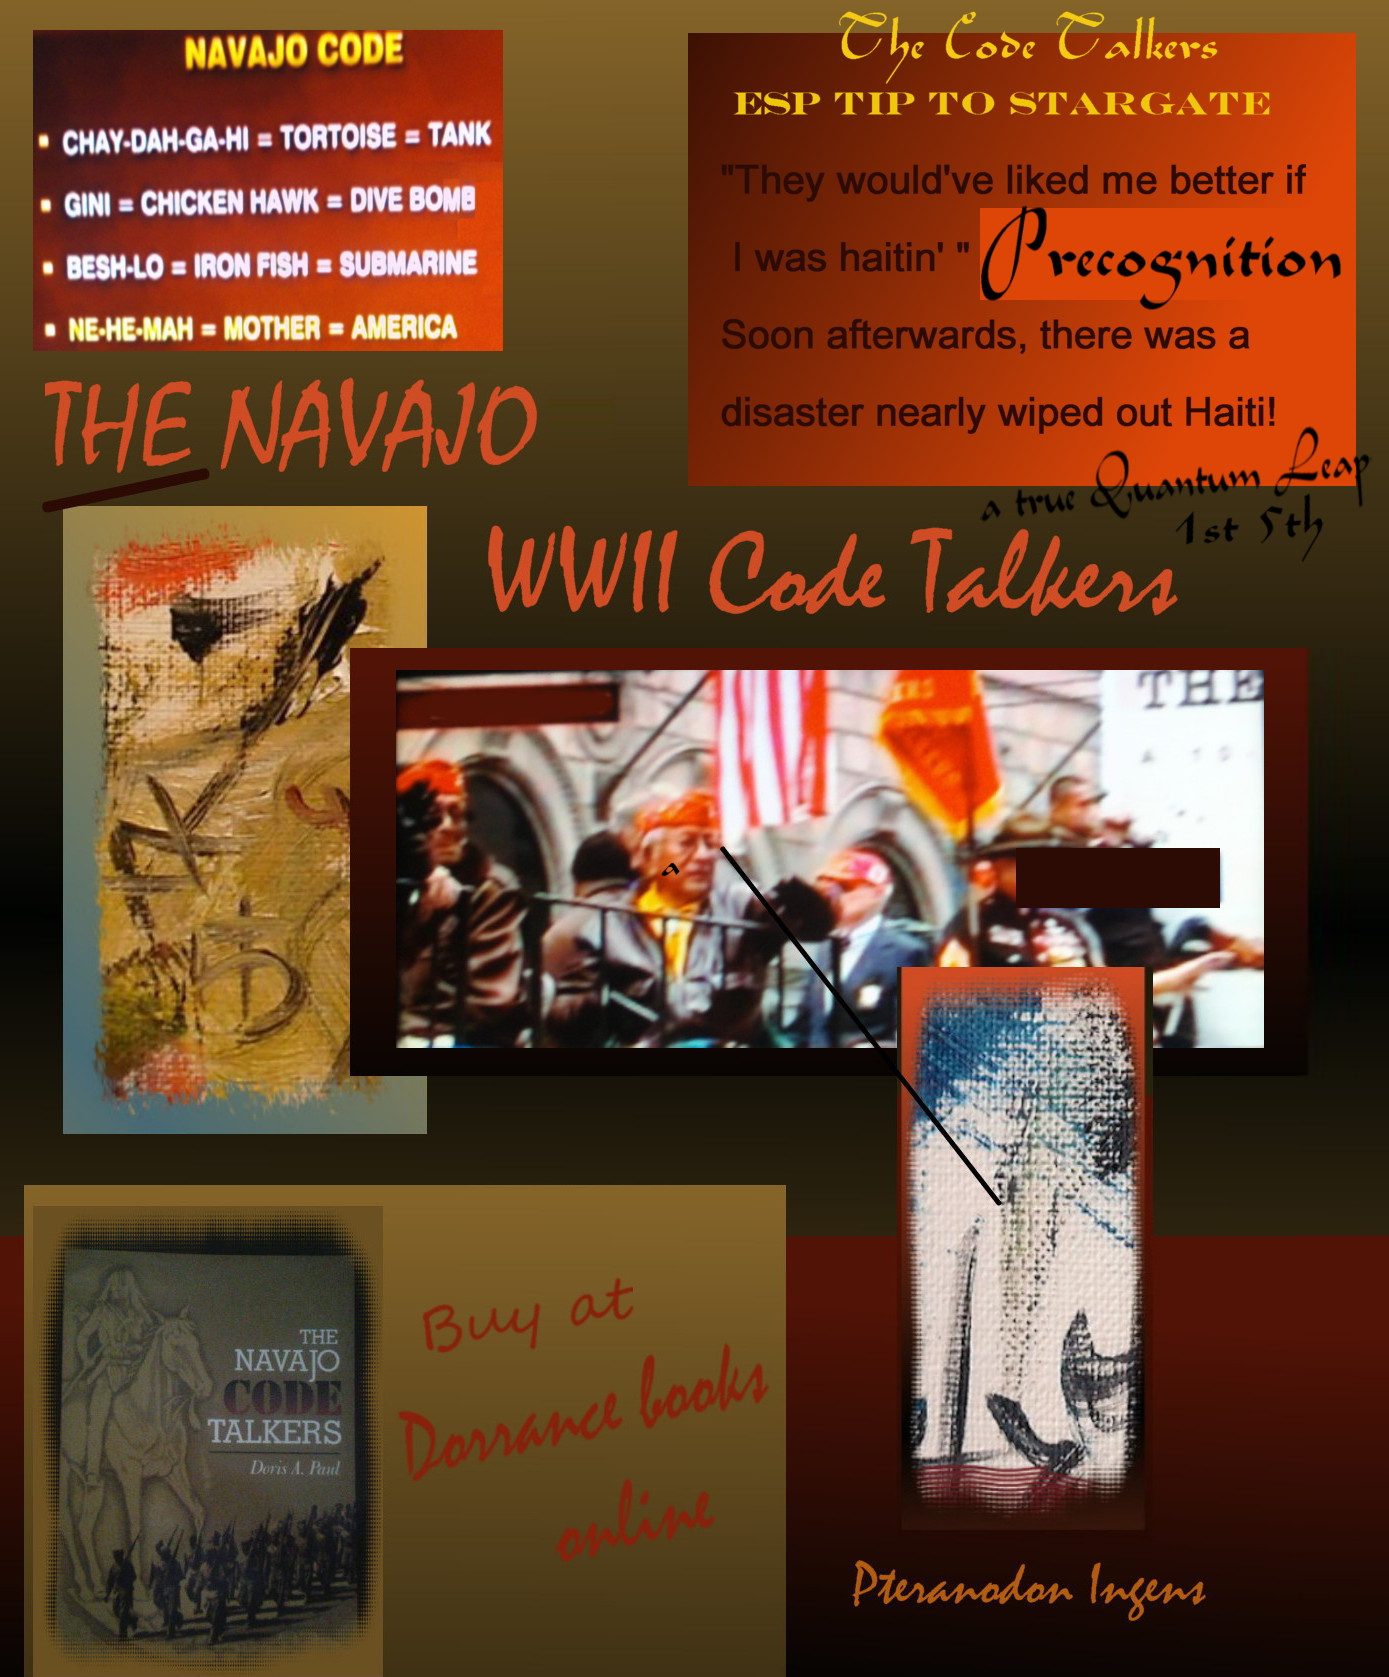 CODE TALKERS credit page